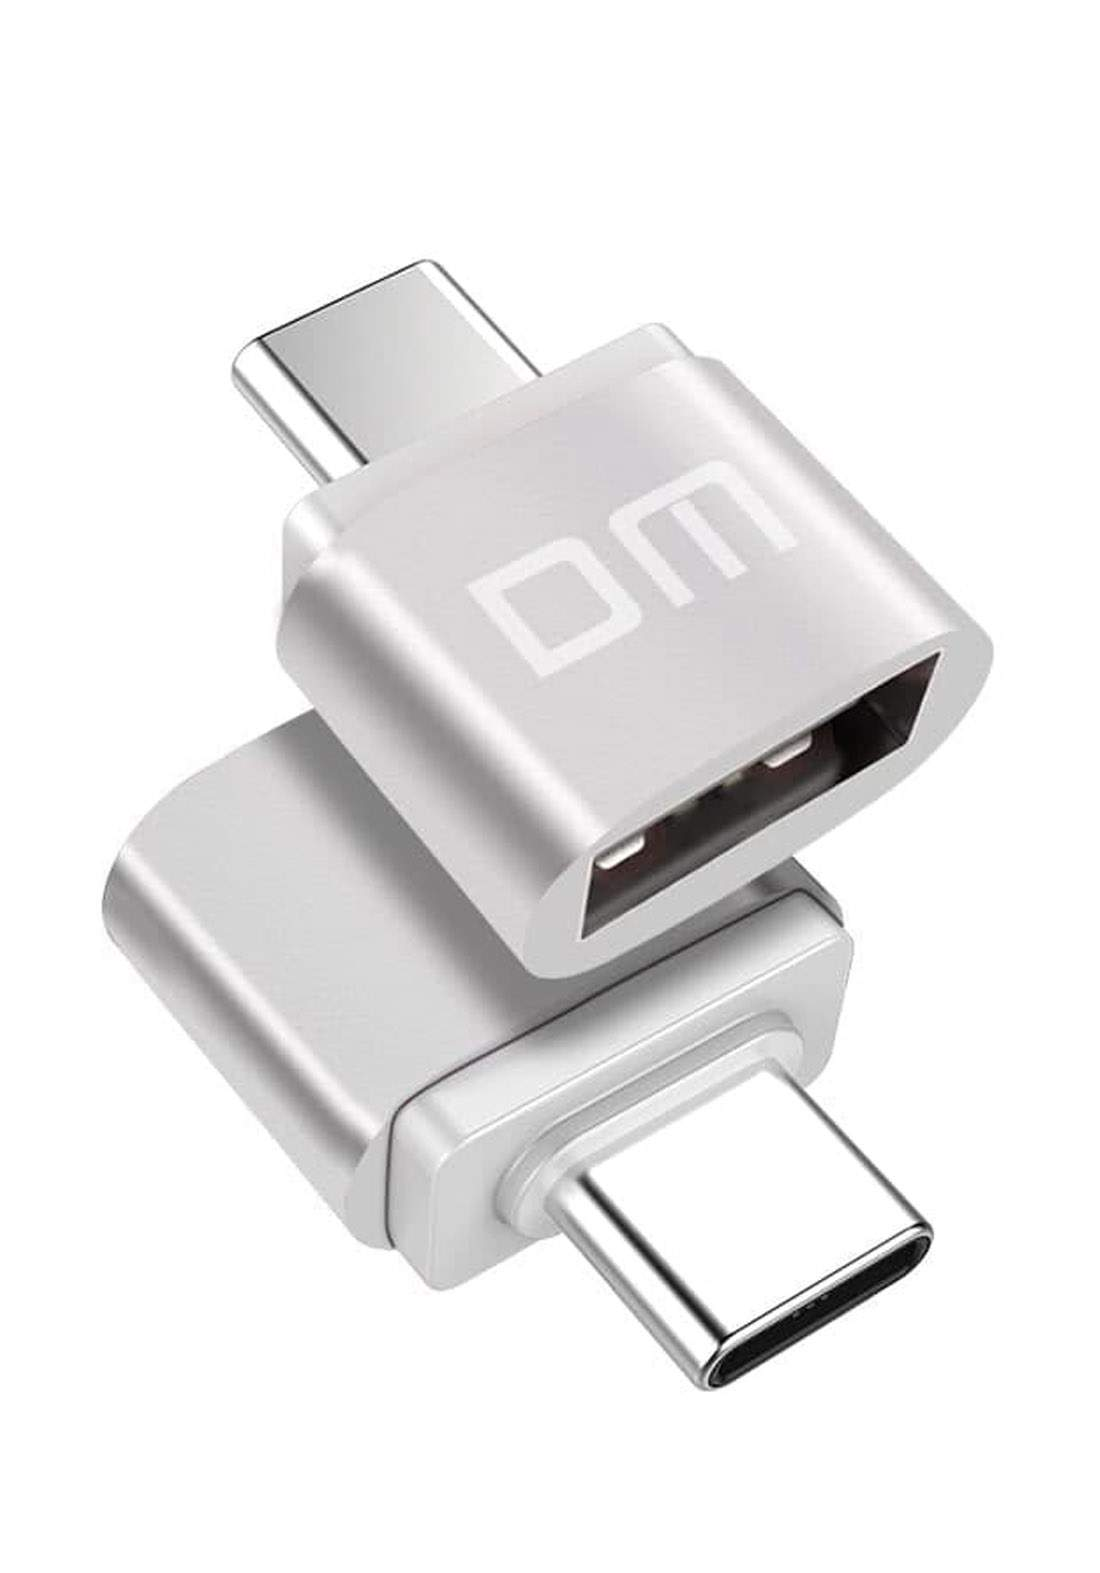 DM AD002 Type C to USB OTG Adapter- Silver